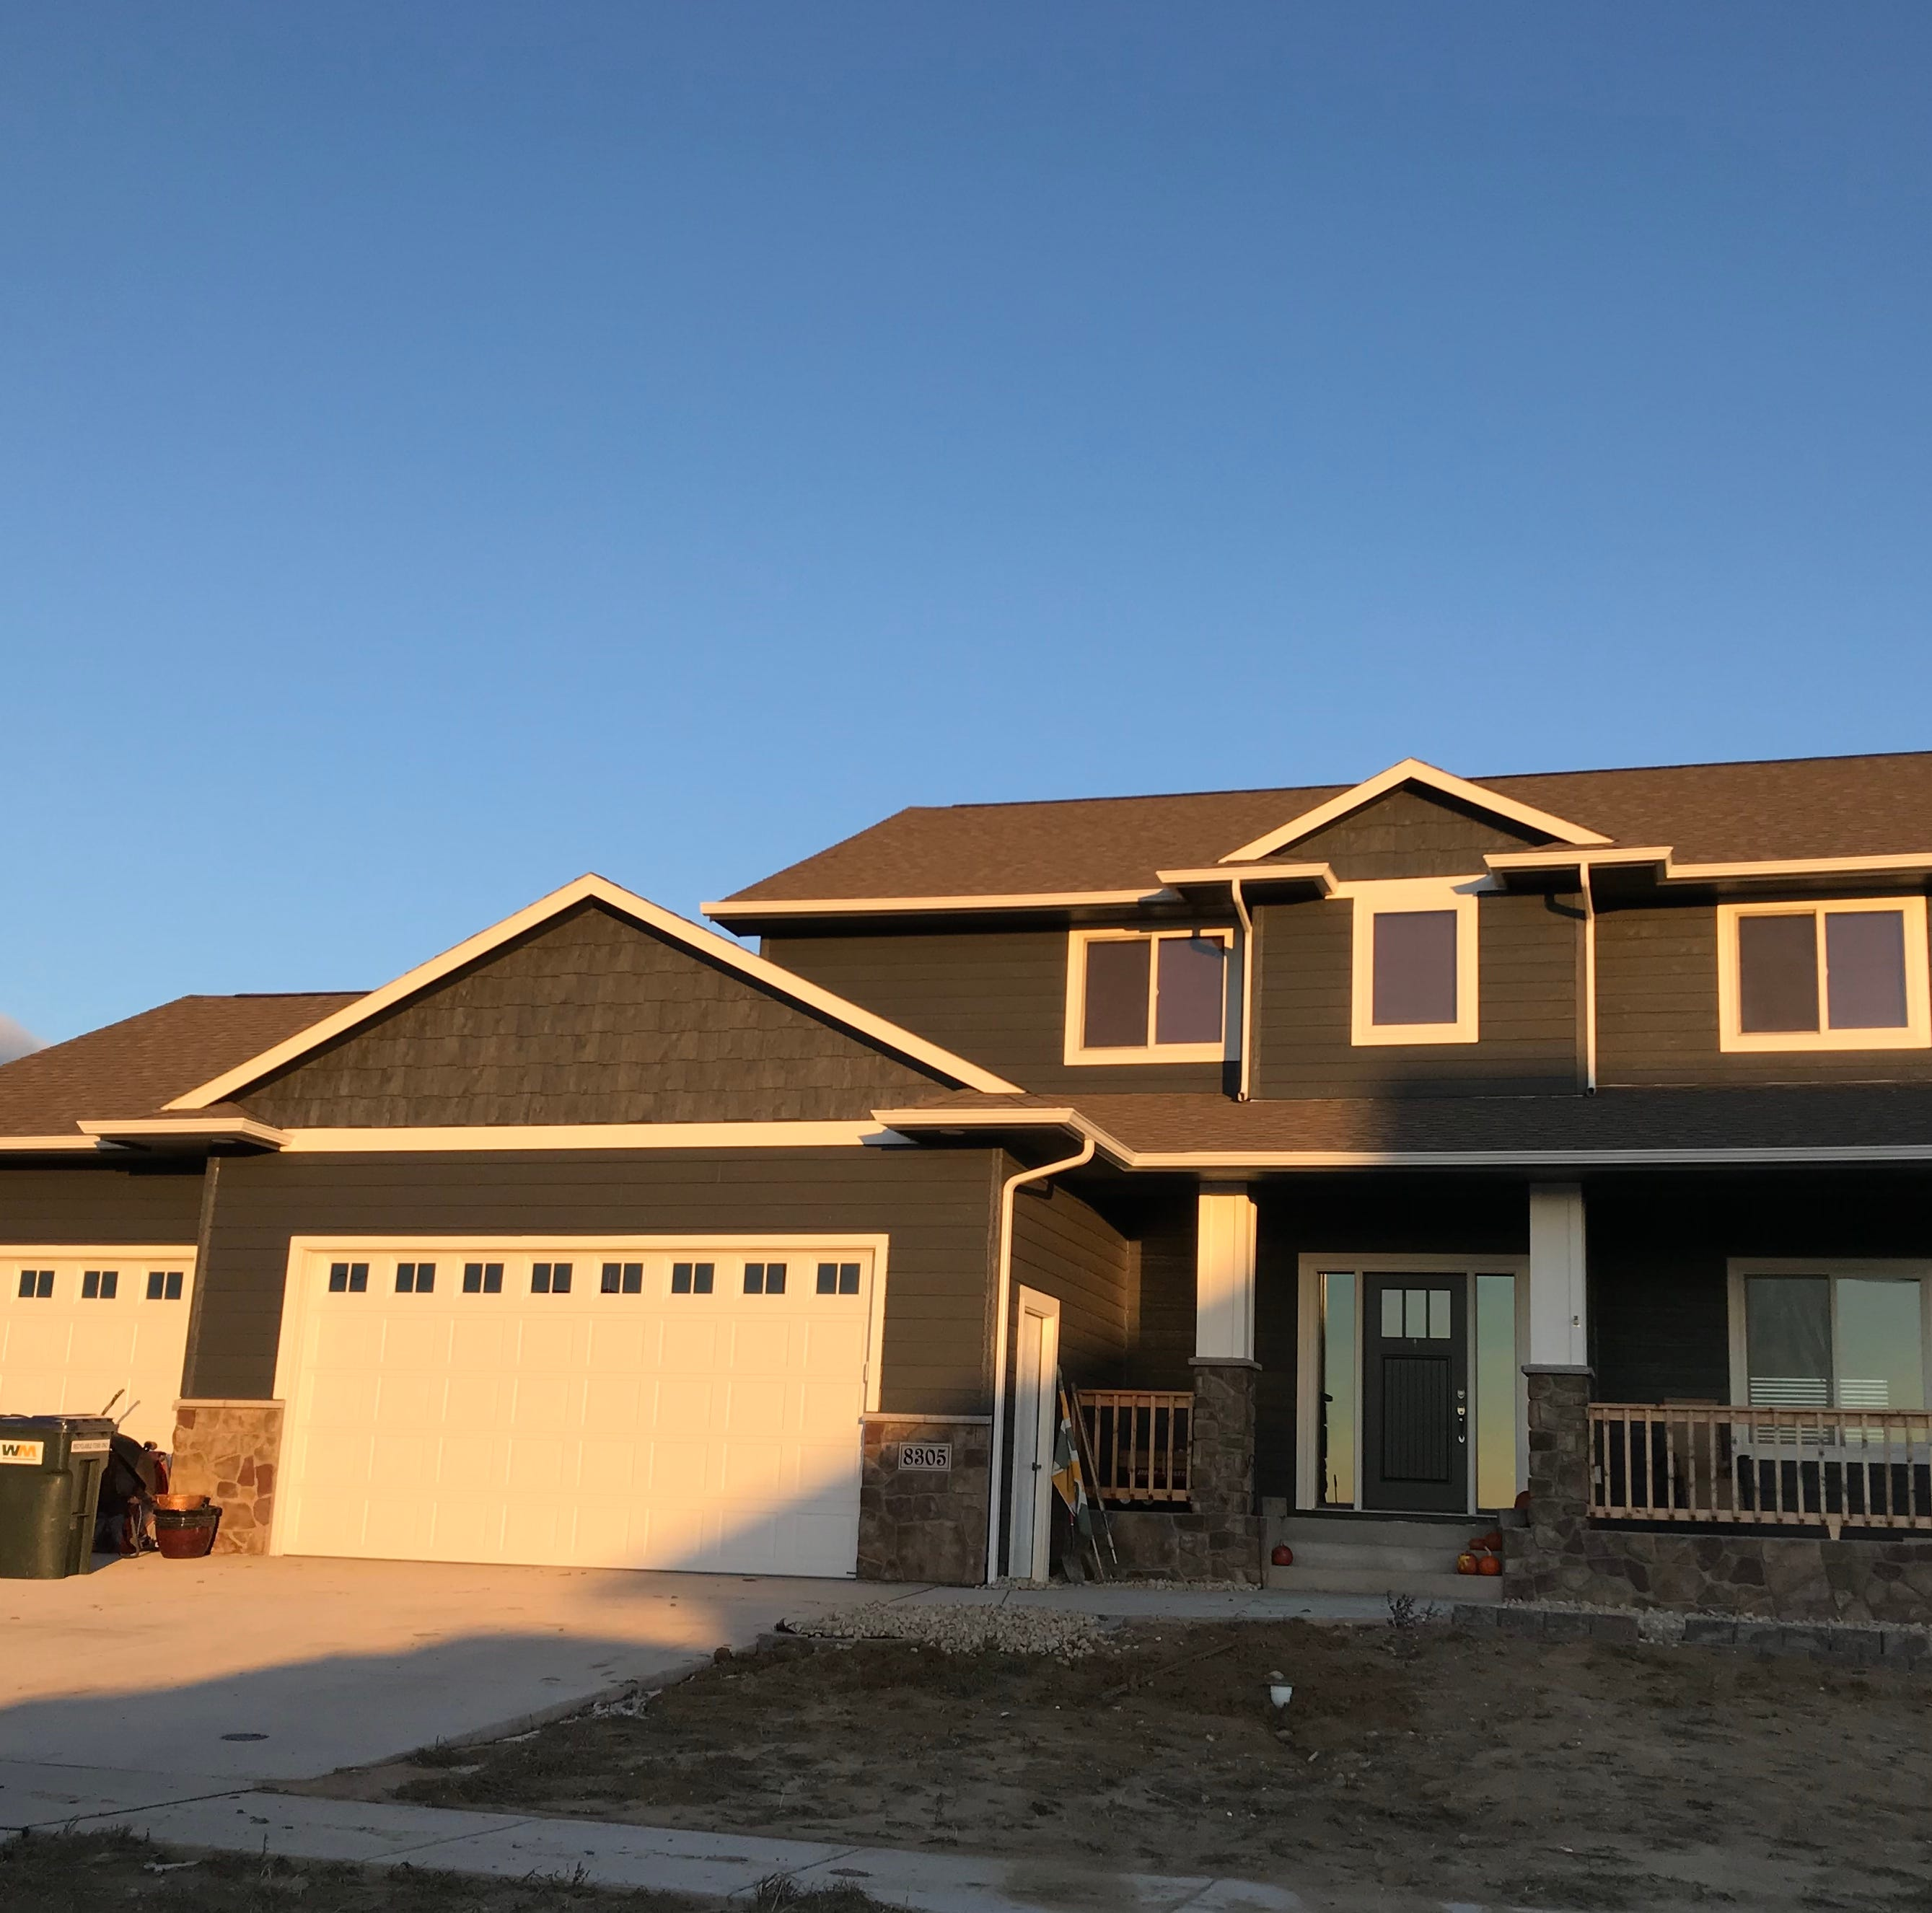 New home in booming Willow Ridge addition sells for $463,000, topping weekly home sale list